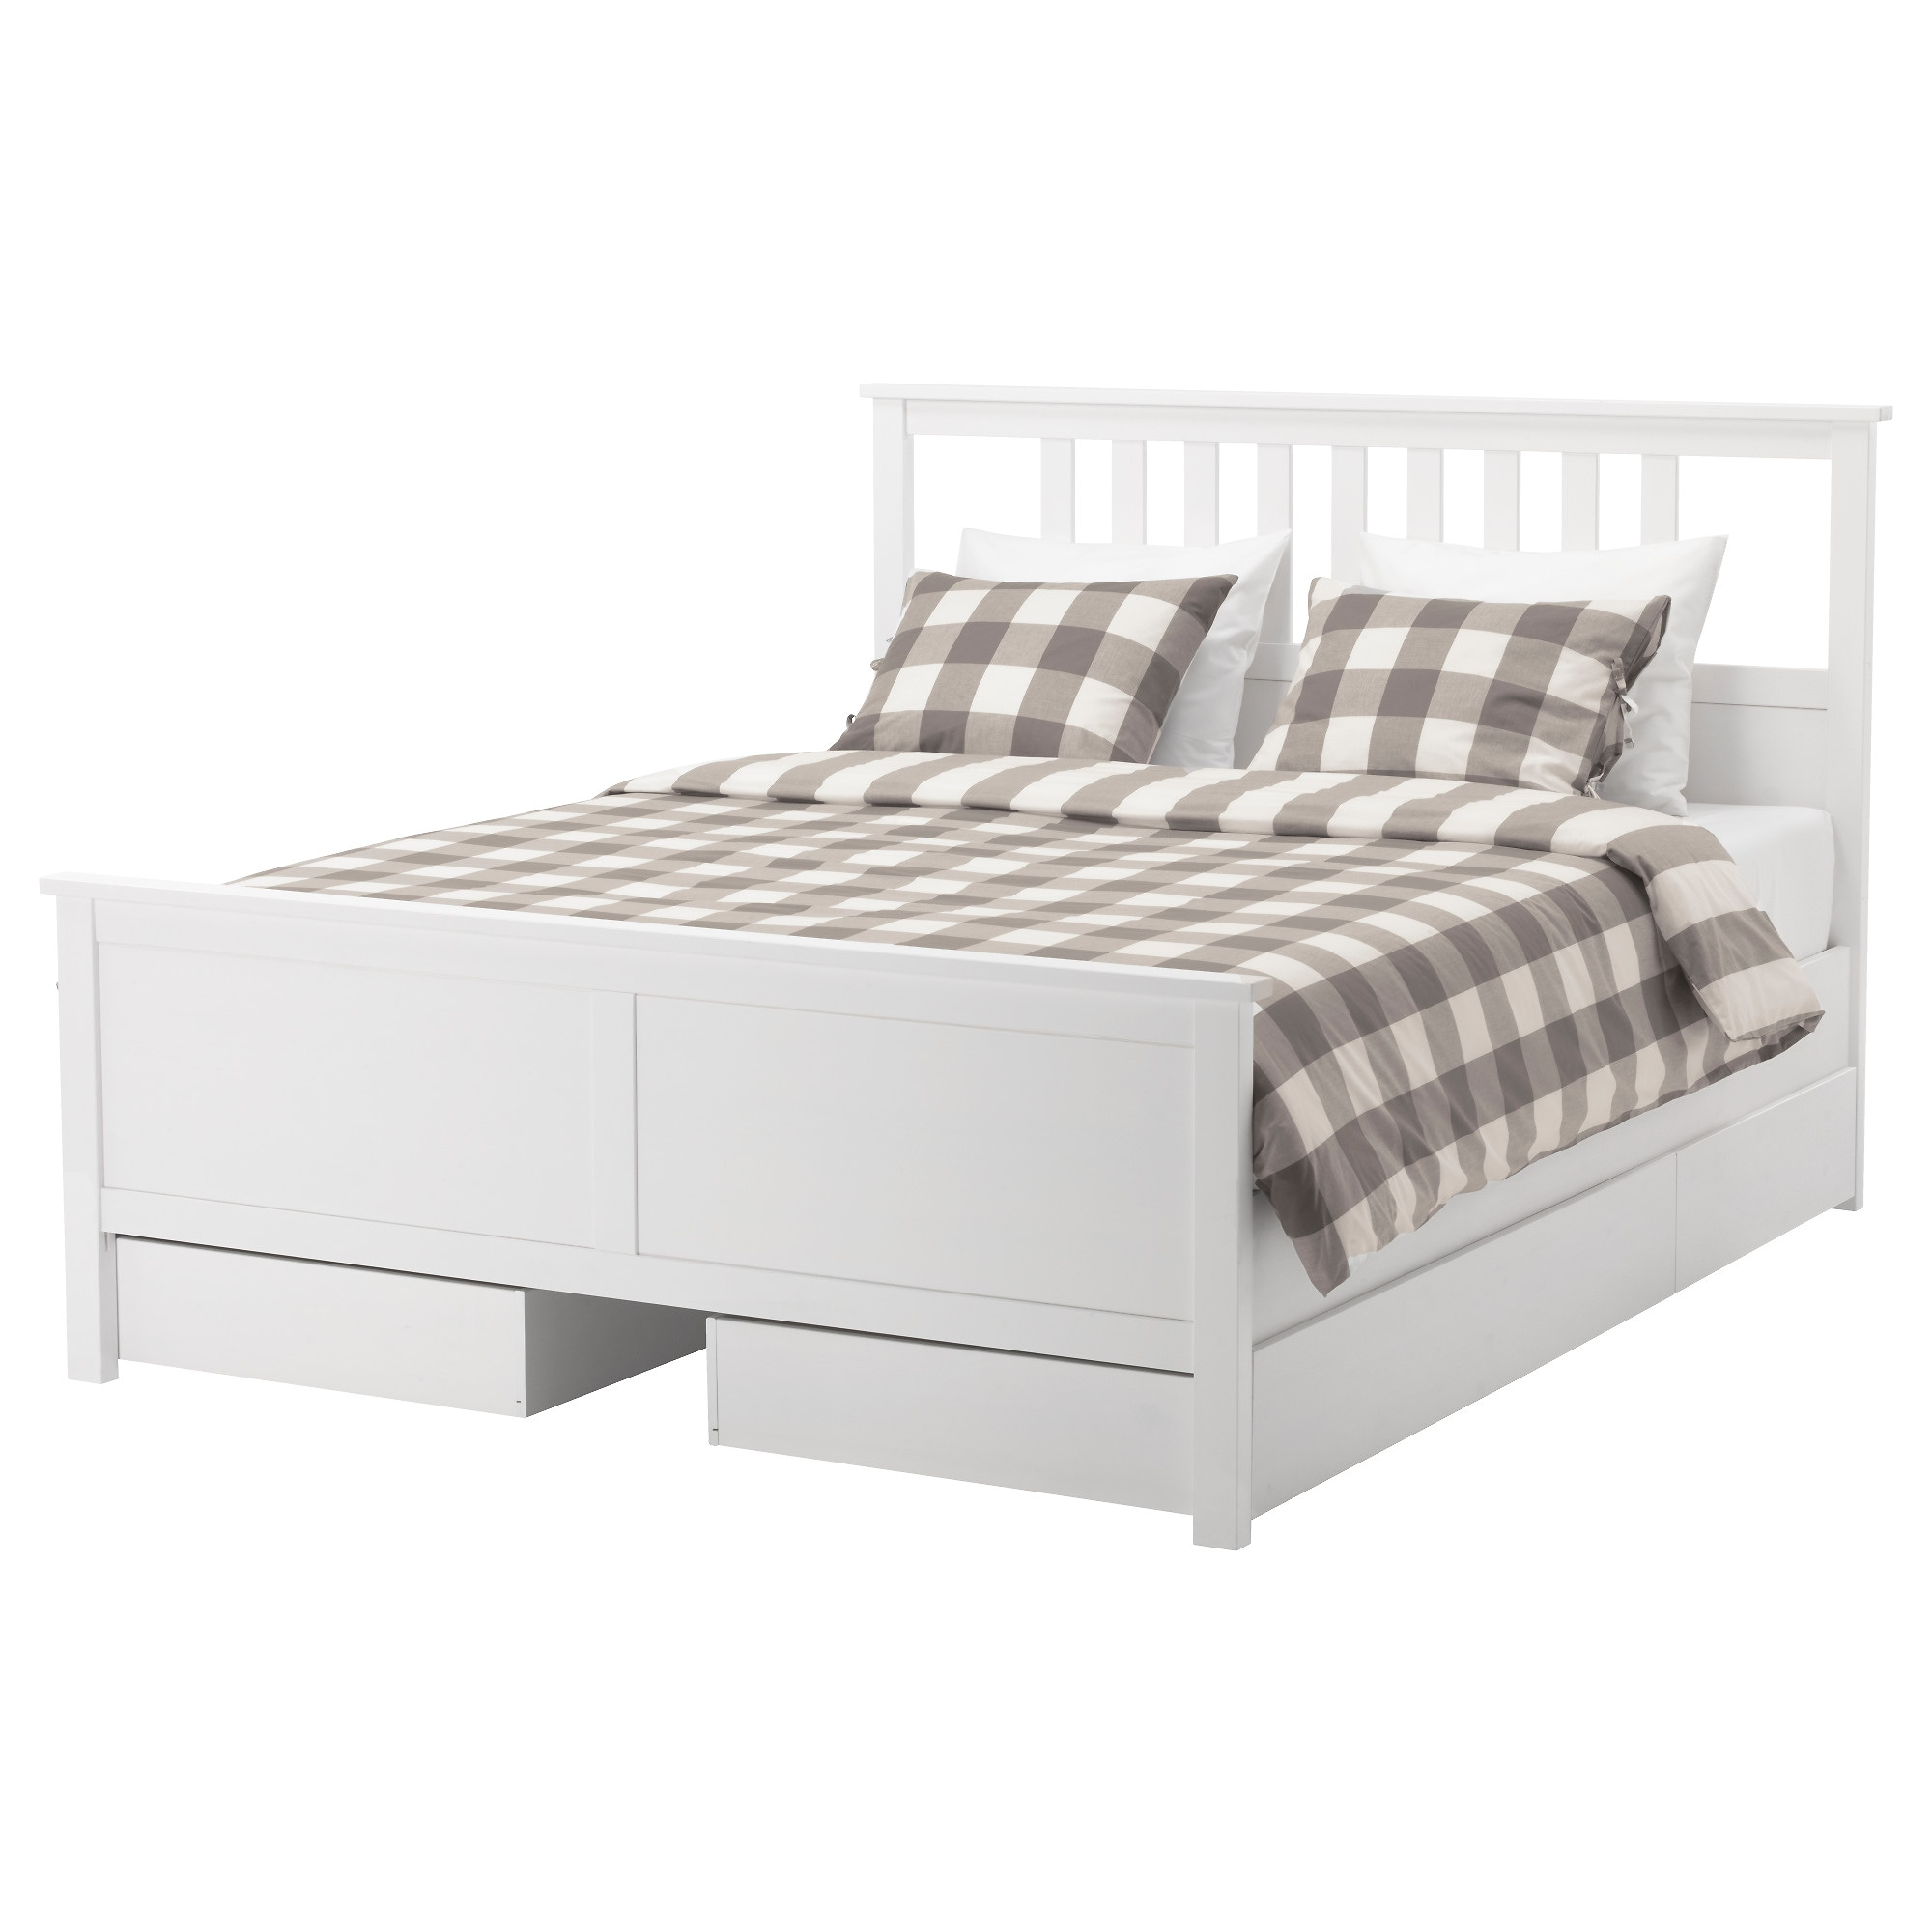 Merveilleux Bed Frame With 4 Storage Boxes HEMNES White Stain, Luröy